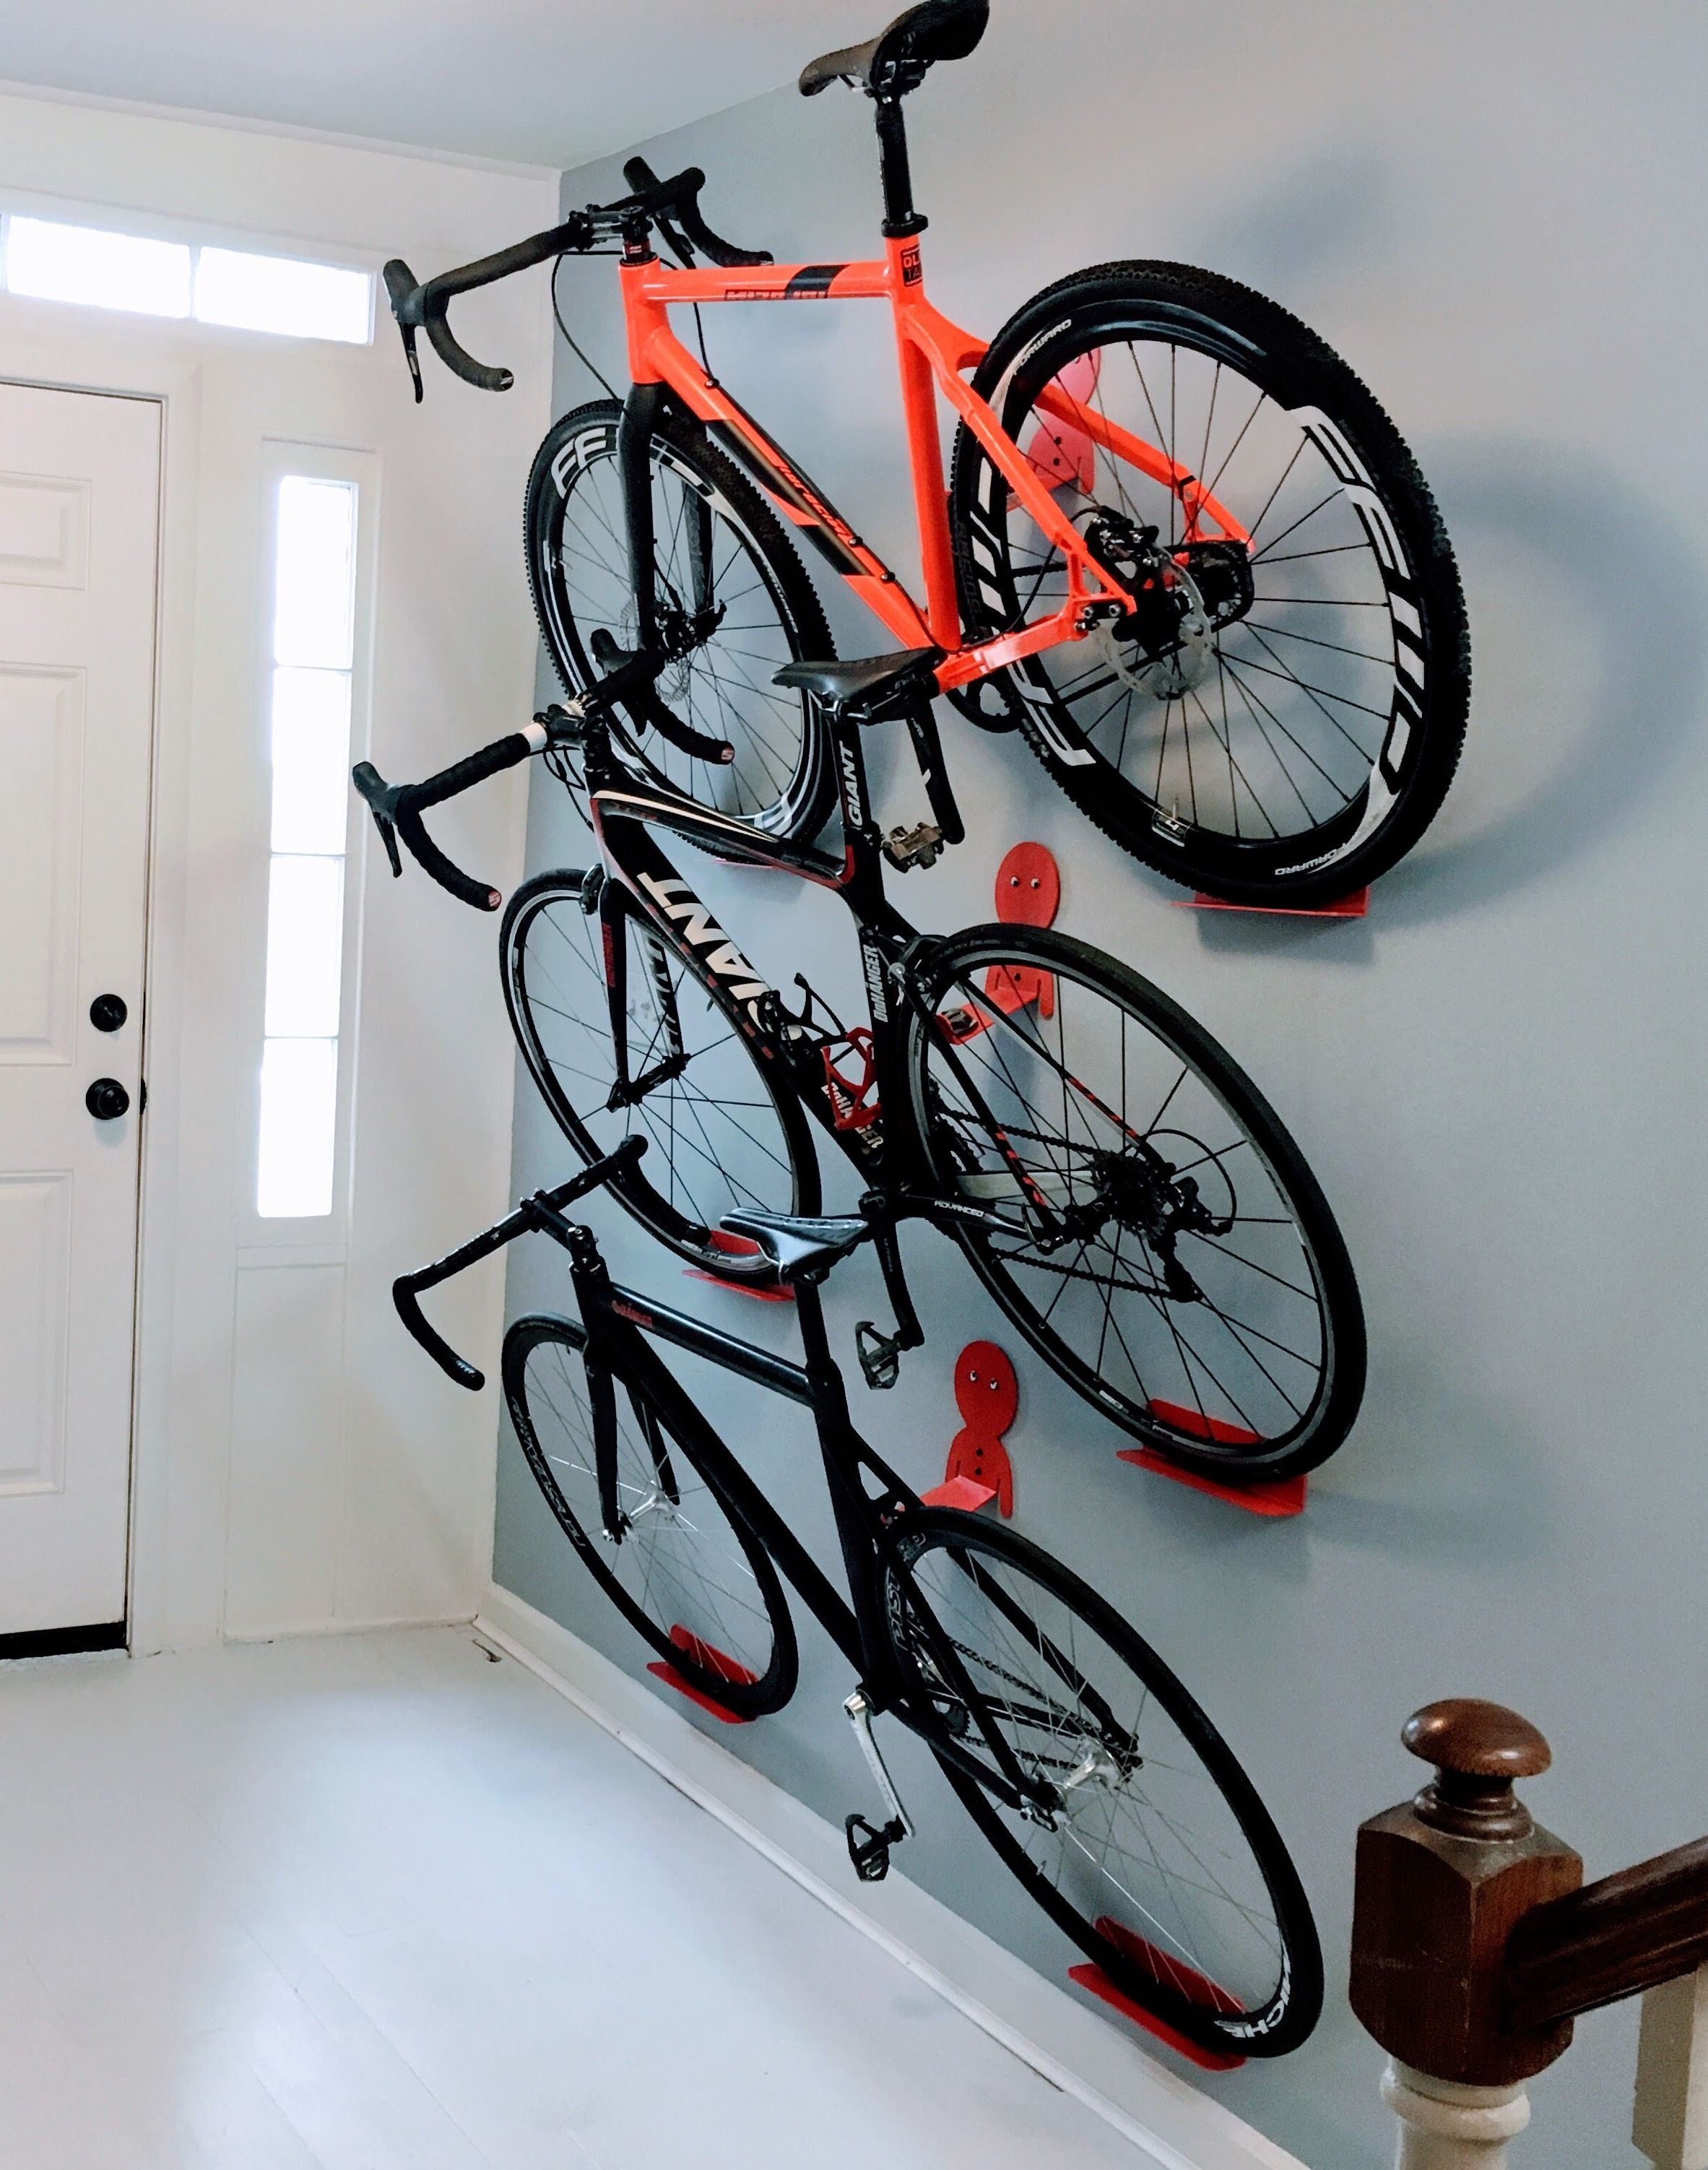 multiple bikes hanging rack system dahanger dan pedal hook dah nger pinterest racking. Black Bedroom Furniture Sets. Home Design Ideas